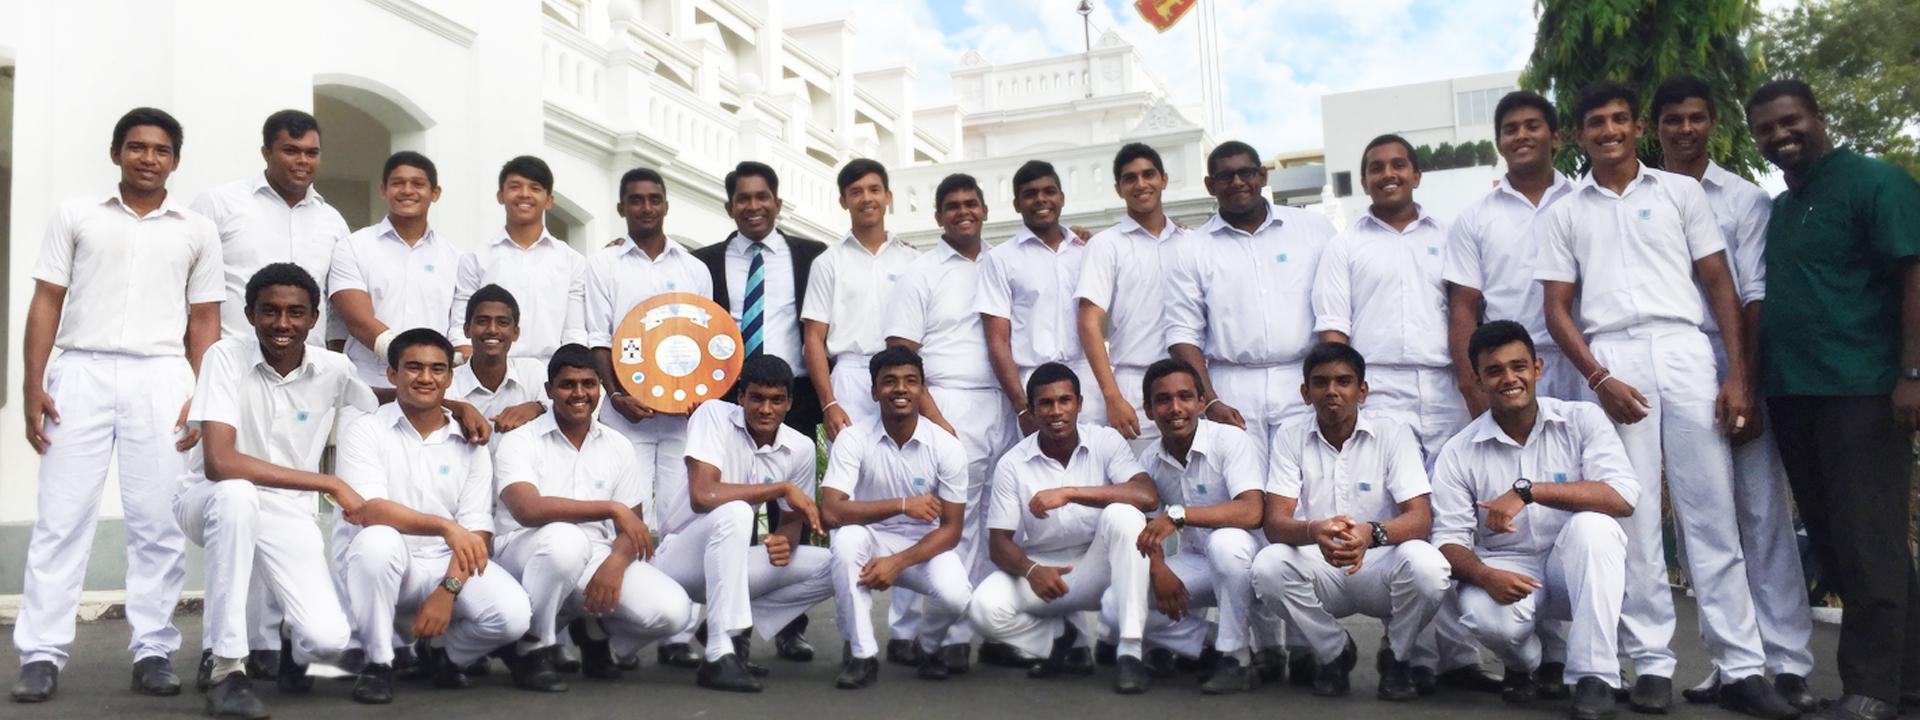 Sir Oliver E. Goonetilleke Shield came to Wesley